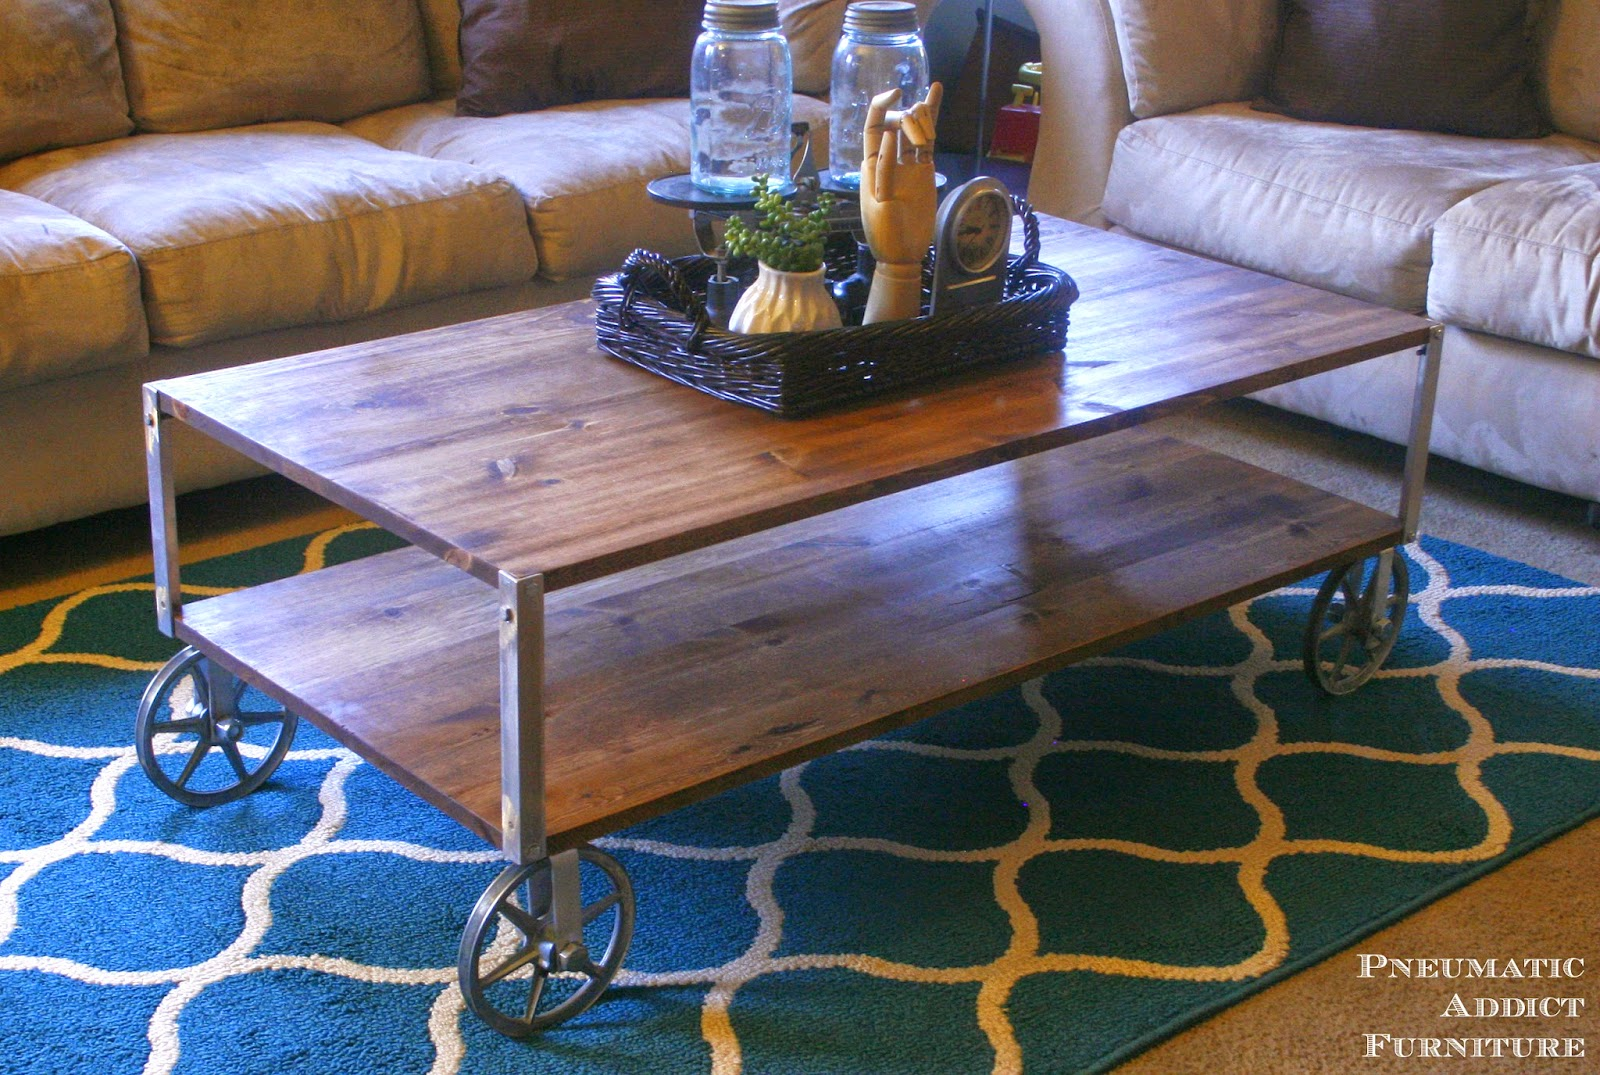 Pneumatic addict easy industrial coffee table no welding for Simple coffee table decor